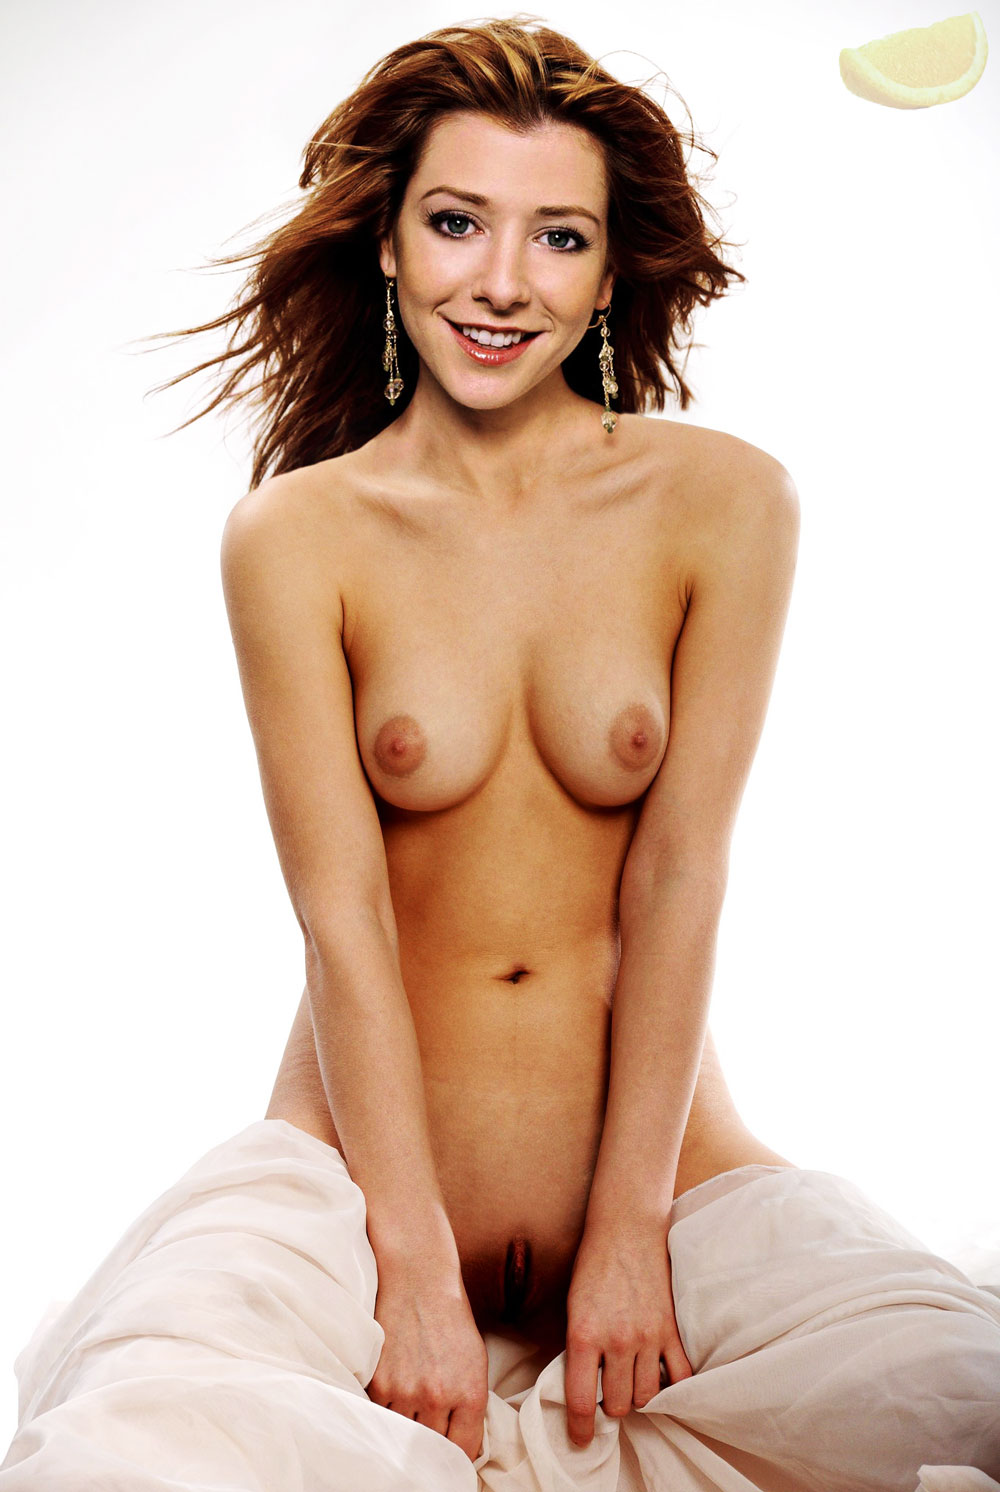 Actress alyson hannigan naked free pictures — photo 10